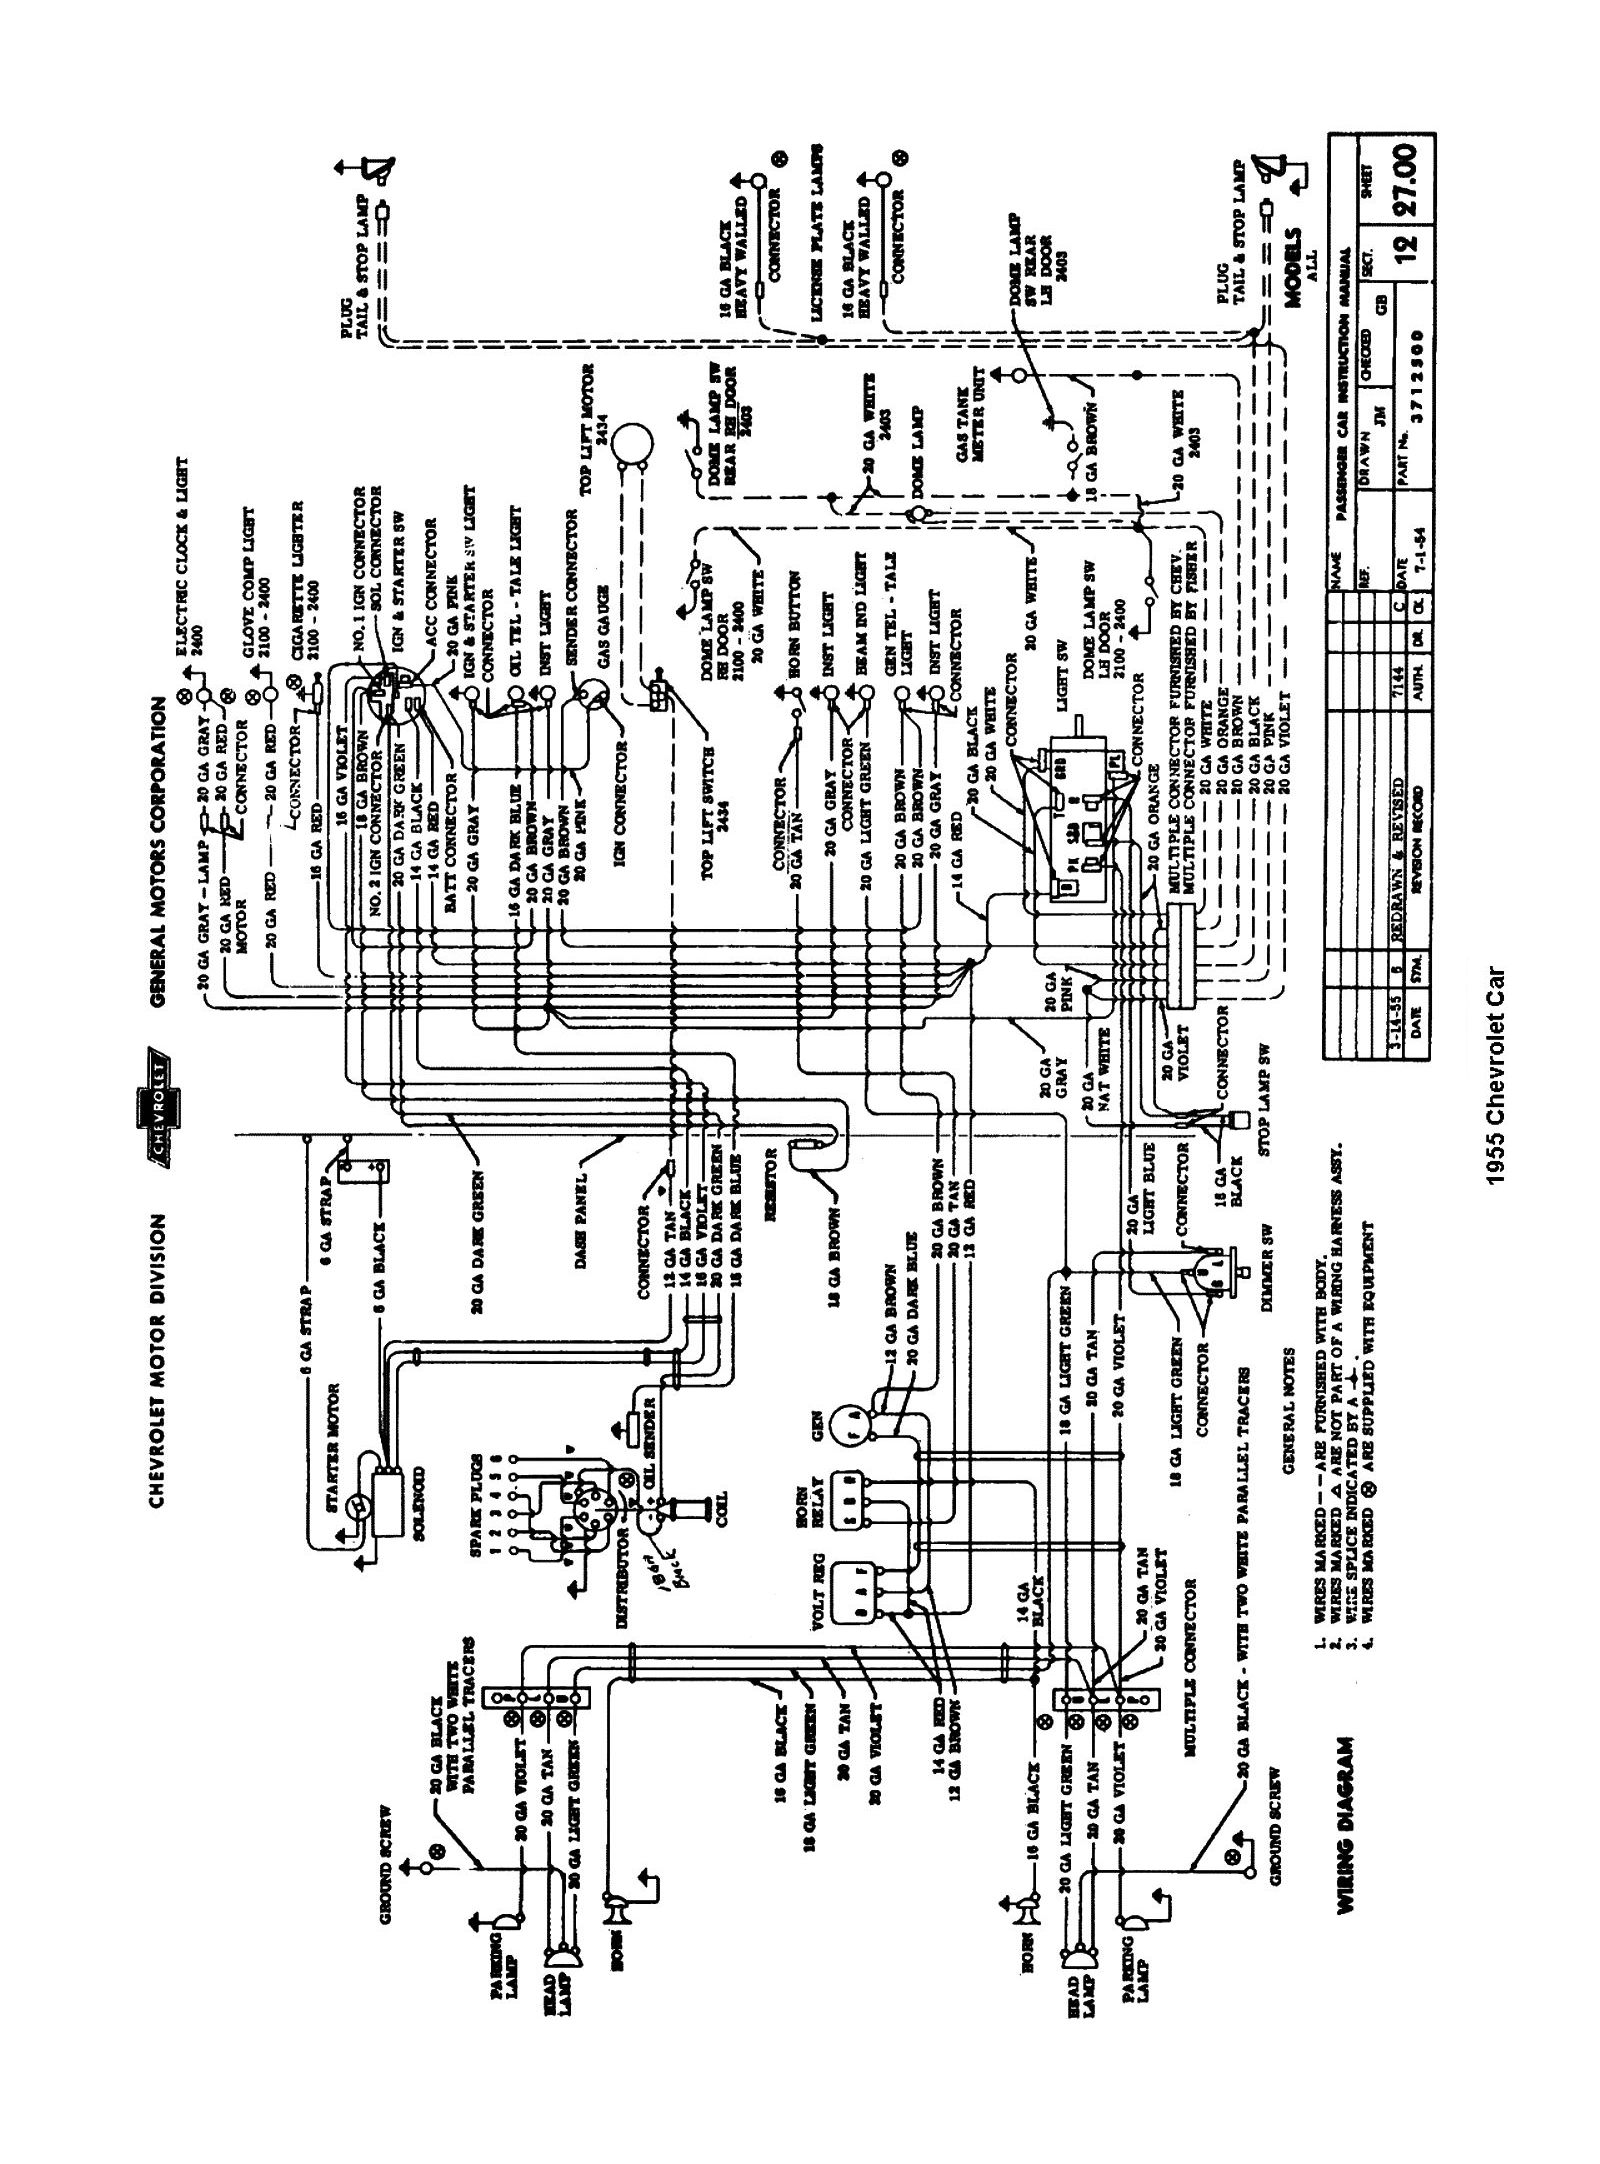 55car1 chevy wiring diagrams 1956 chevy headlight switch wiring diagram at gsmportal.co